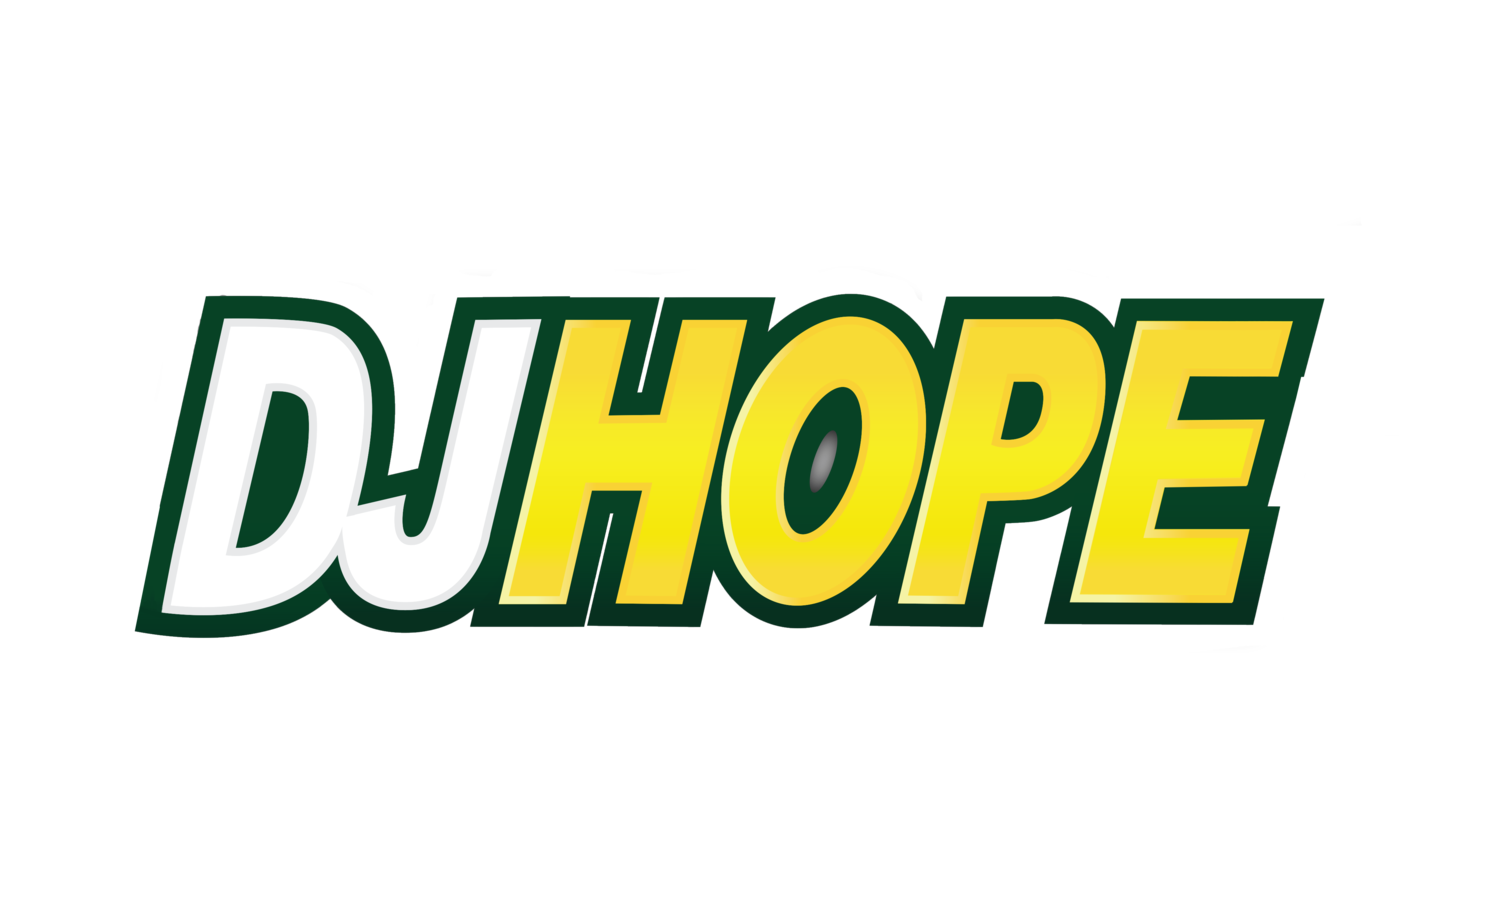 THE OFFICIAL WEBSITE OF DJ HOPE